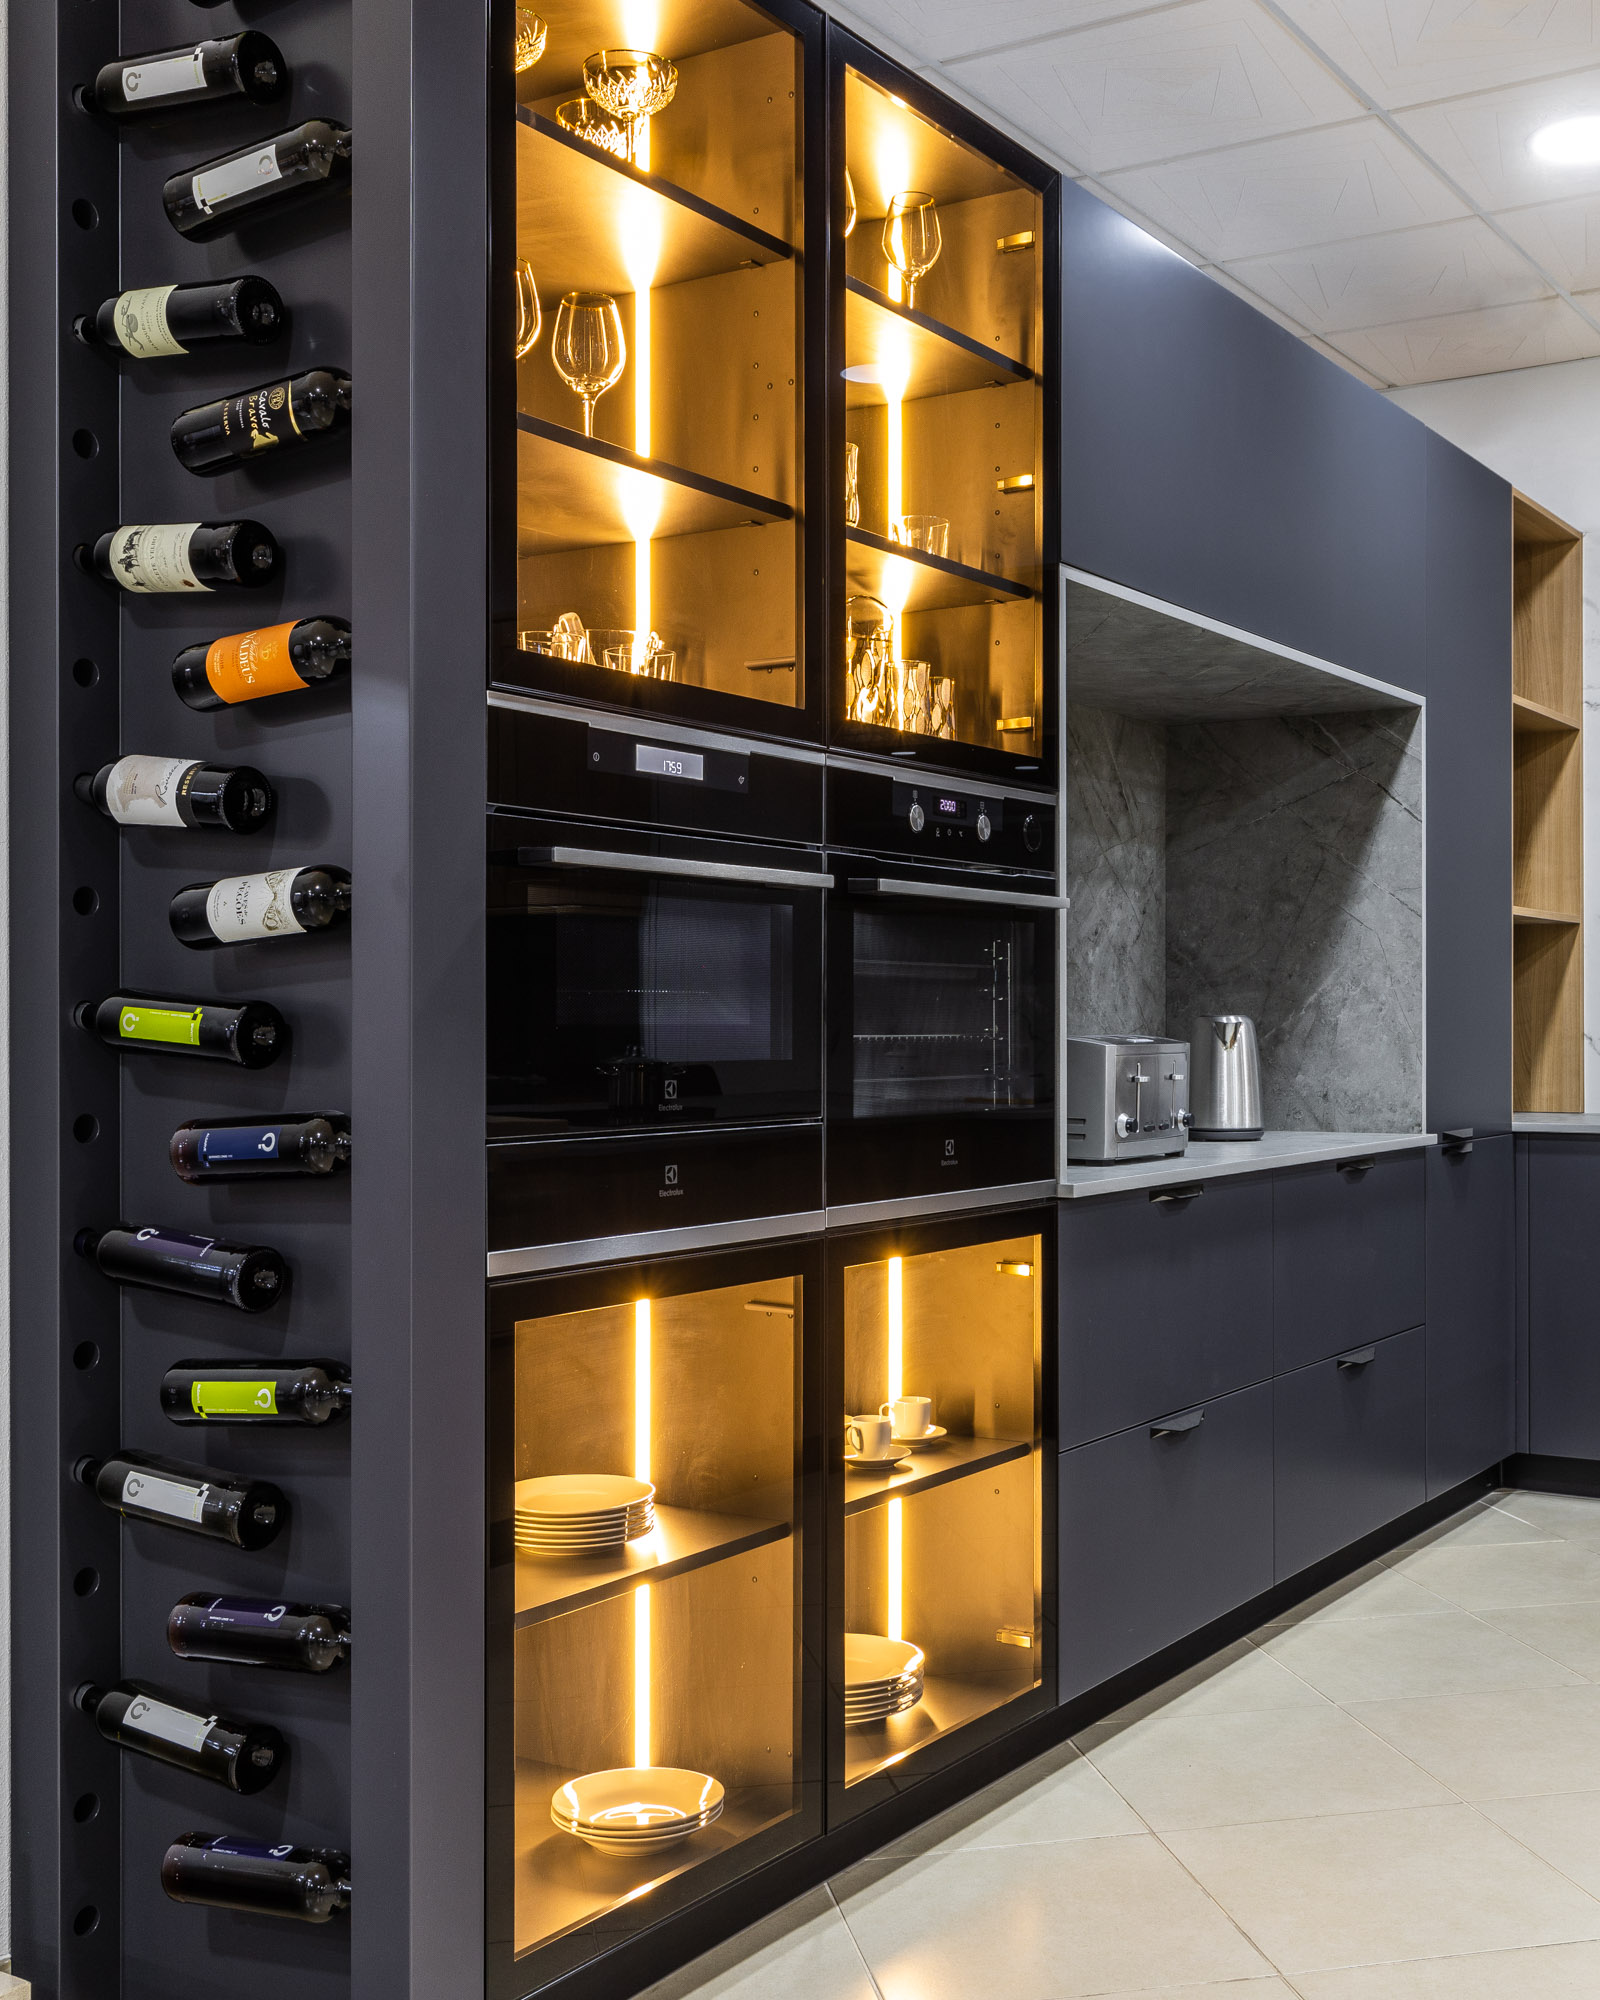 Glass columns with lights and wine rack in kitchen, in JMQ Cozinhas showroom.